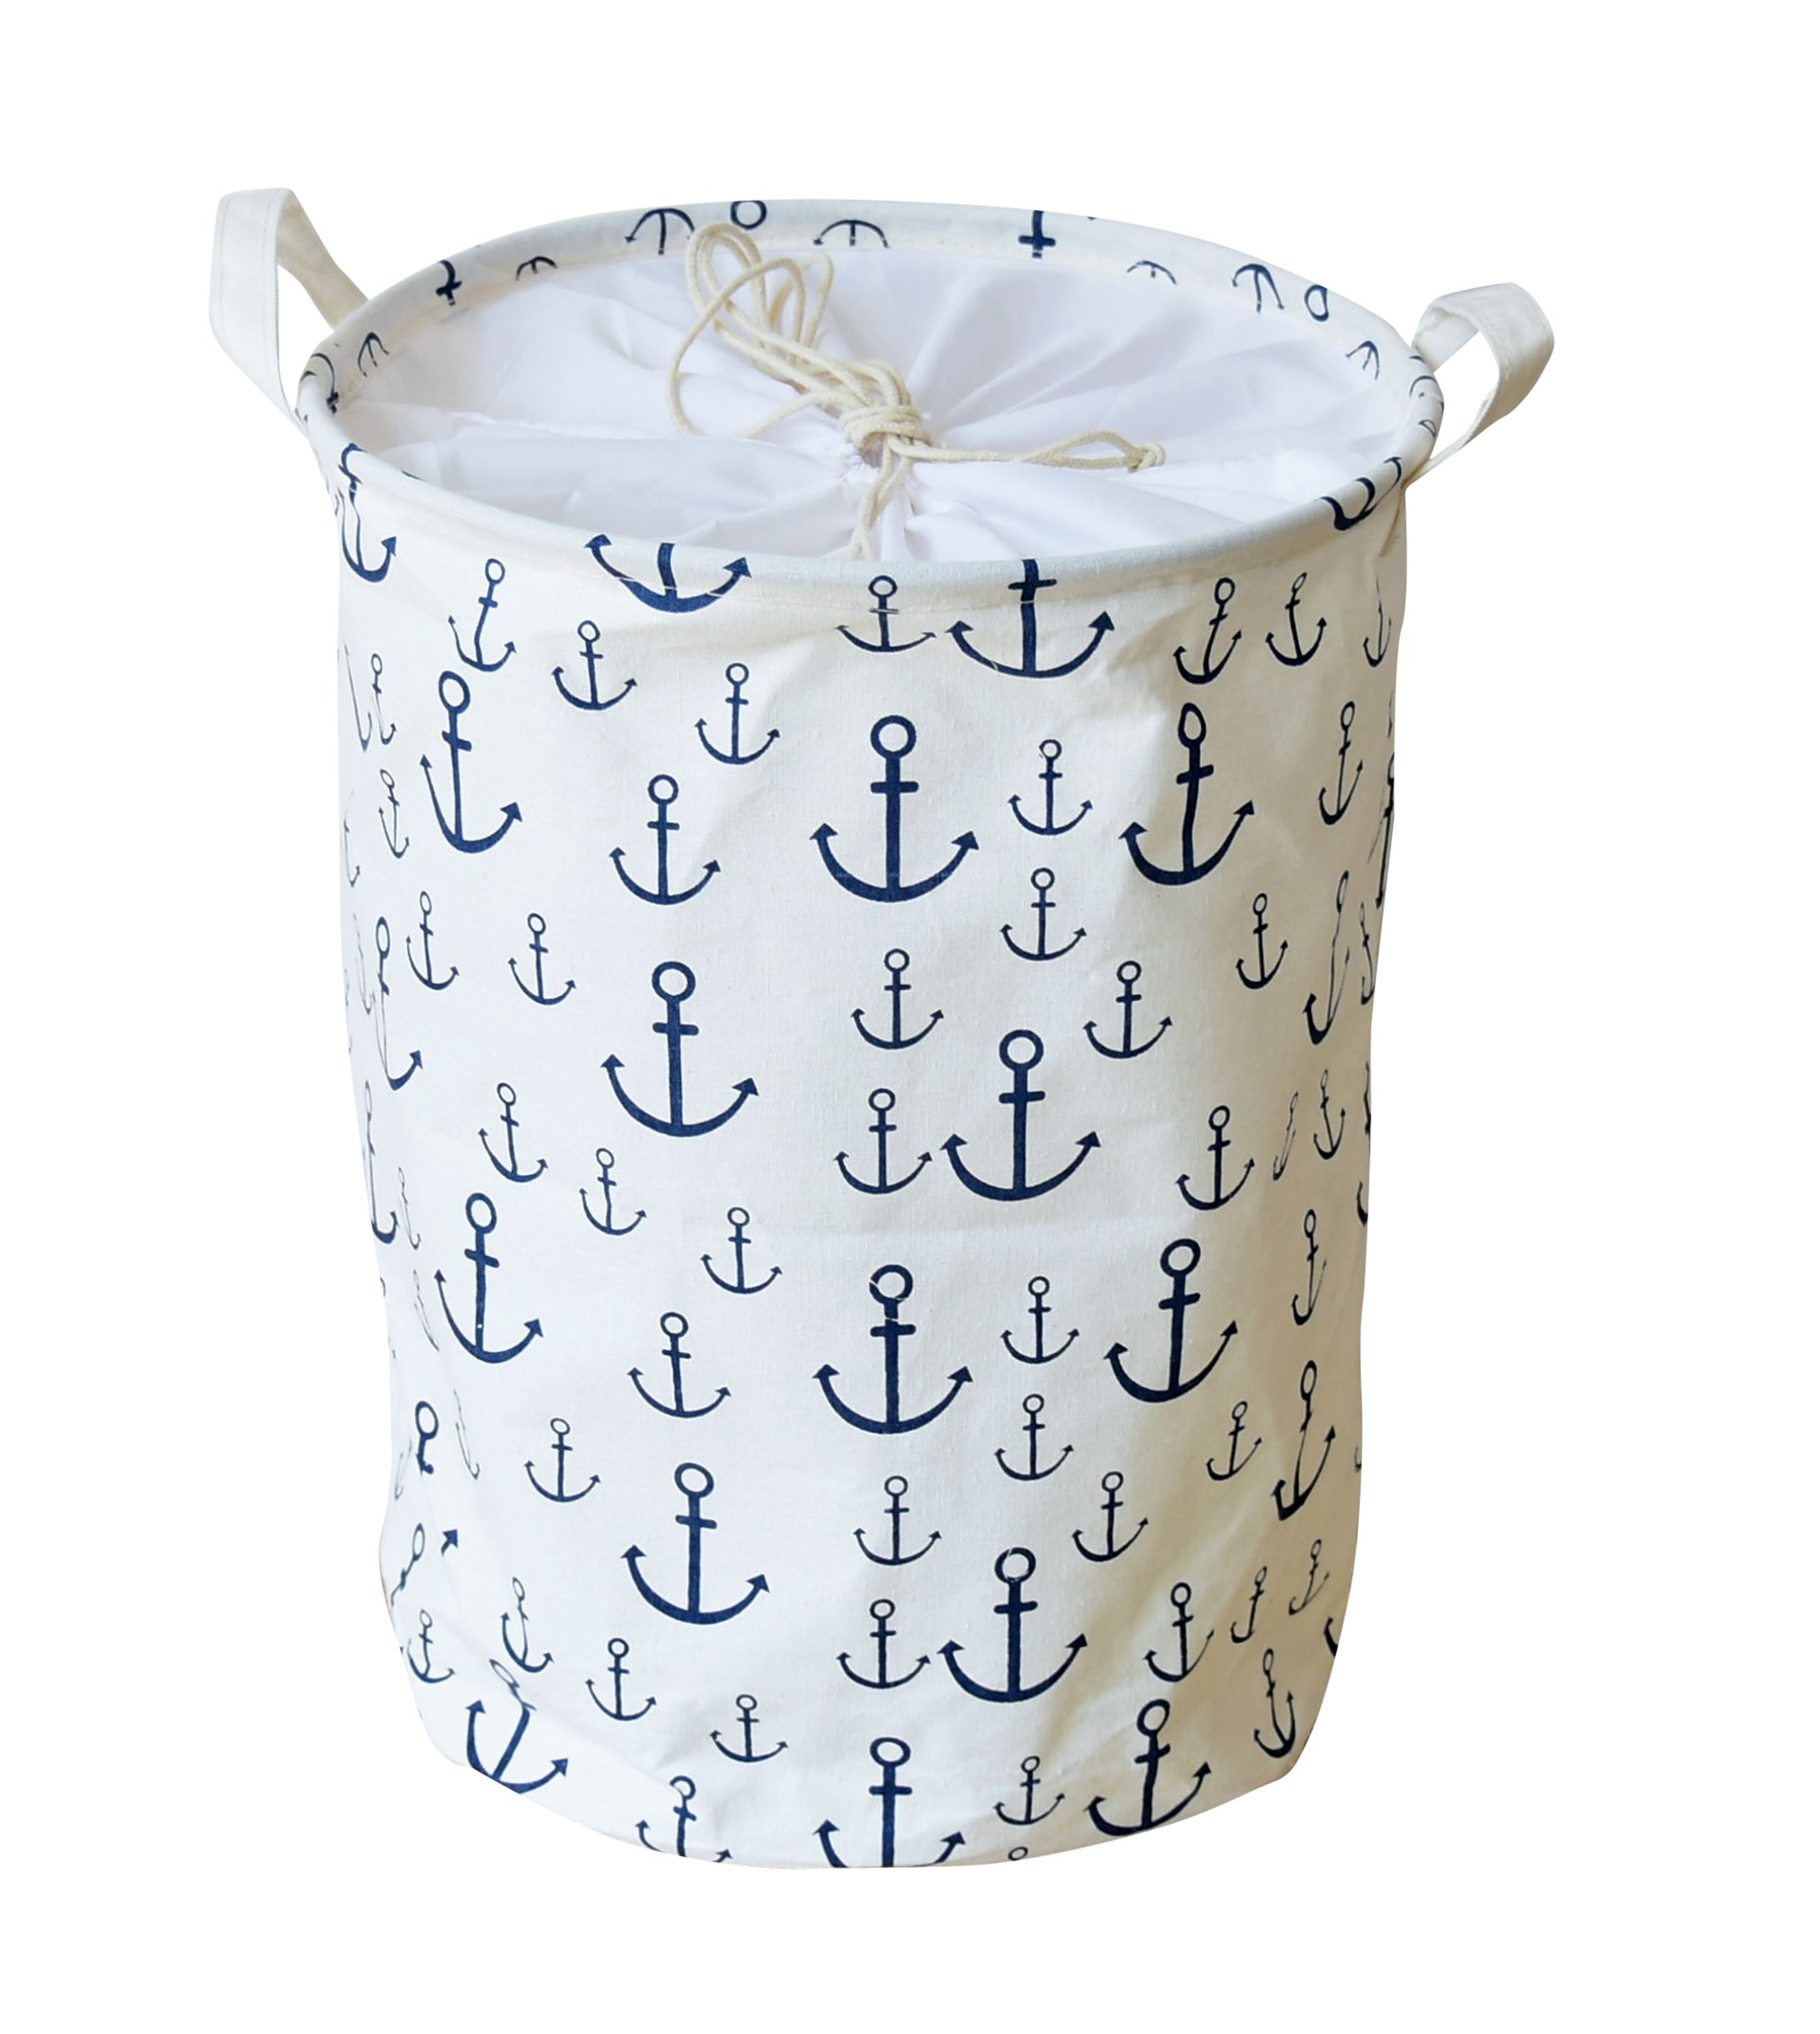 LEELI Clothes Hamper with Lid,Cotton Canvas Laundry Hamper with Handles-Toy Basket Organizer Kids Storage Bins for Clothes(Anchor)